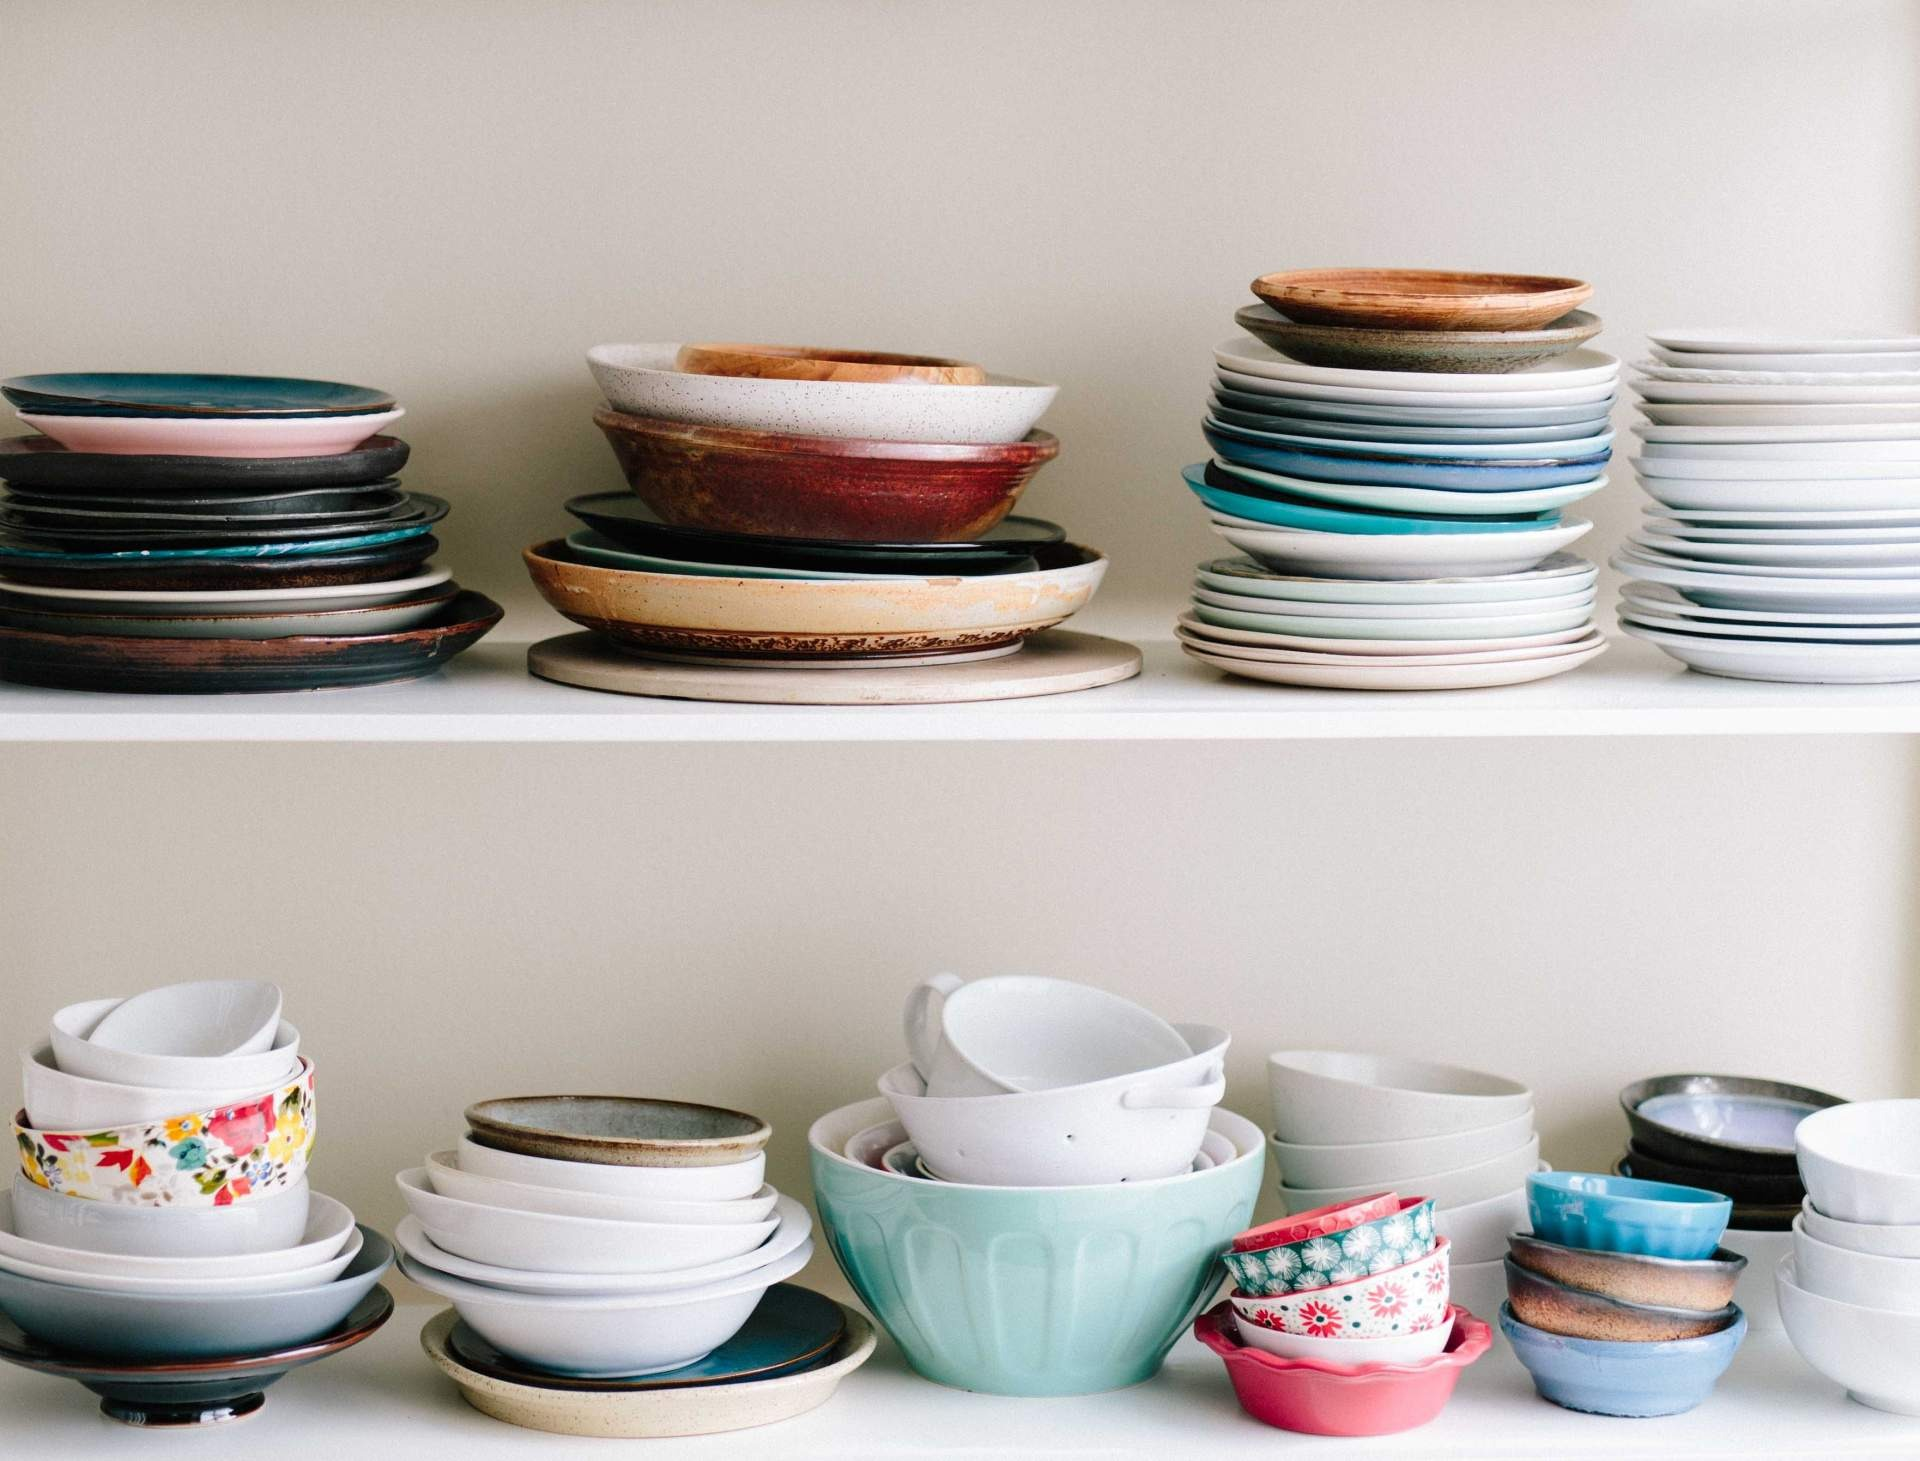 This is an image of kitchen supplies.